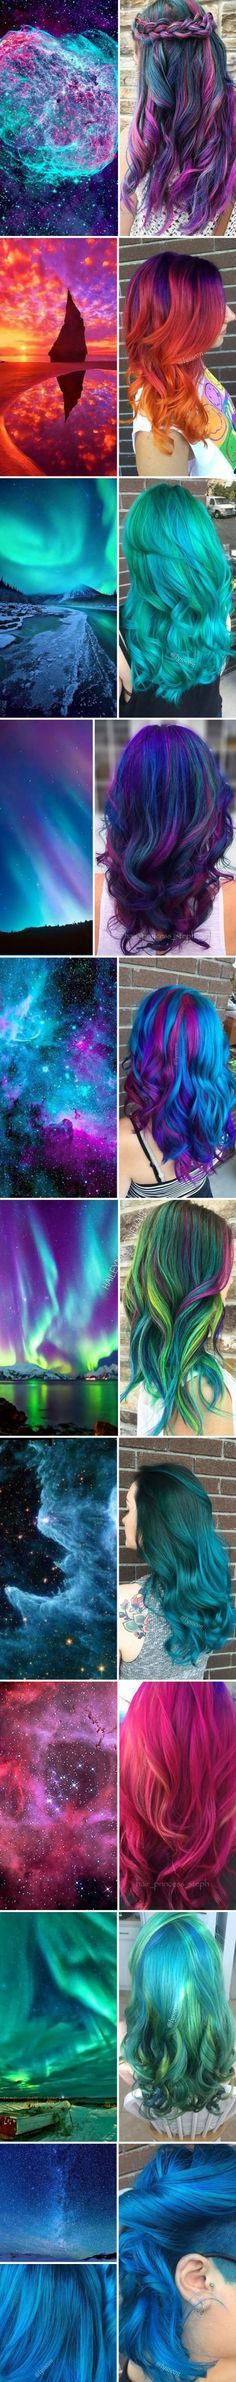 Galaxy hair- various different styles of galaxy hair. I love the pastel and rainbow colours!